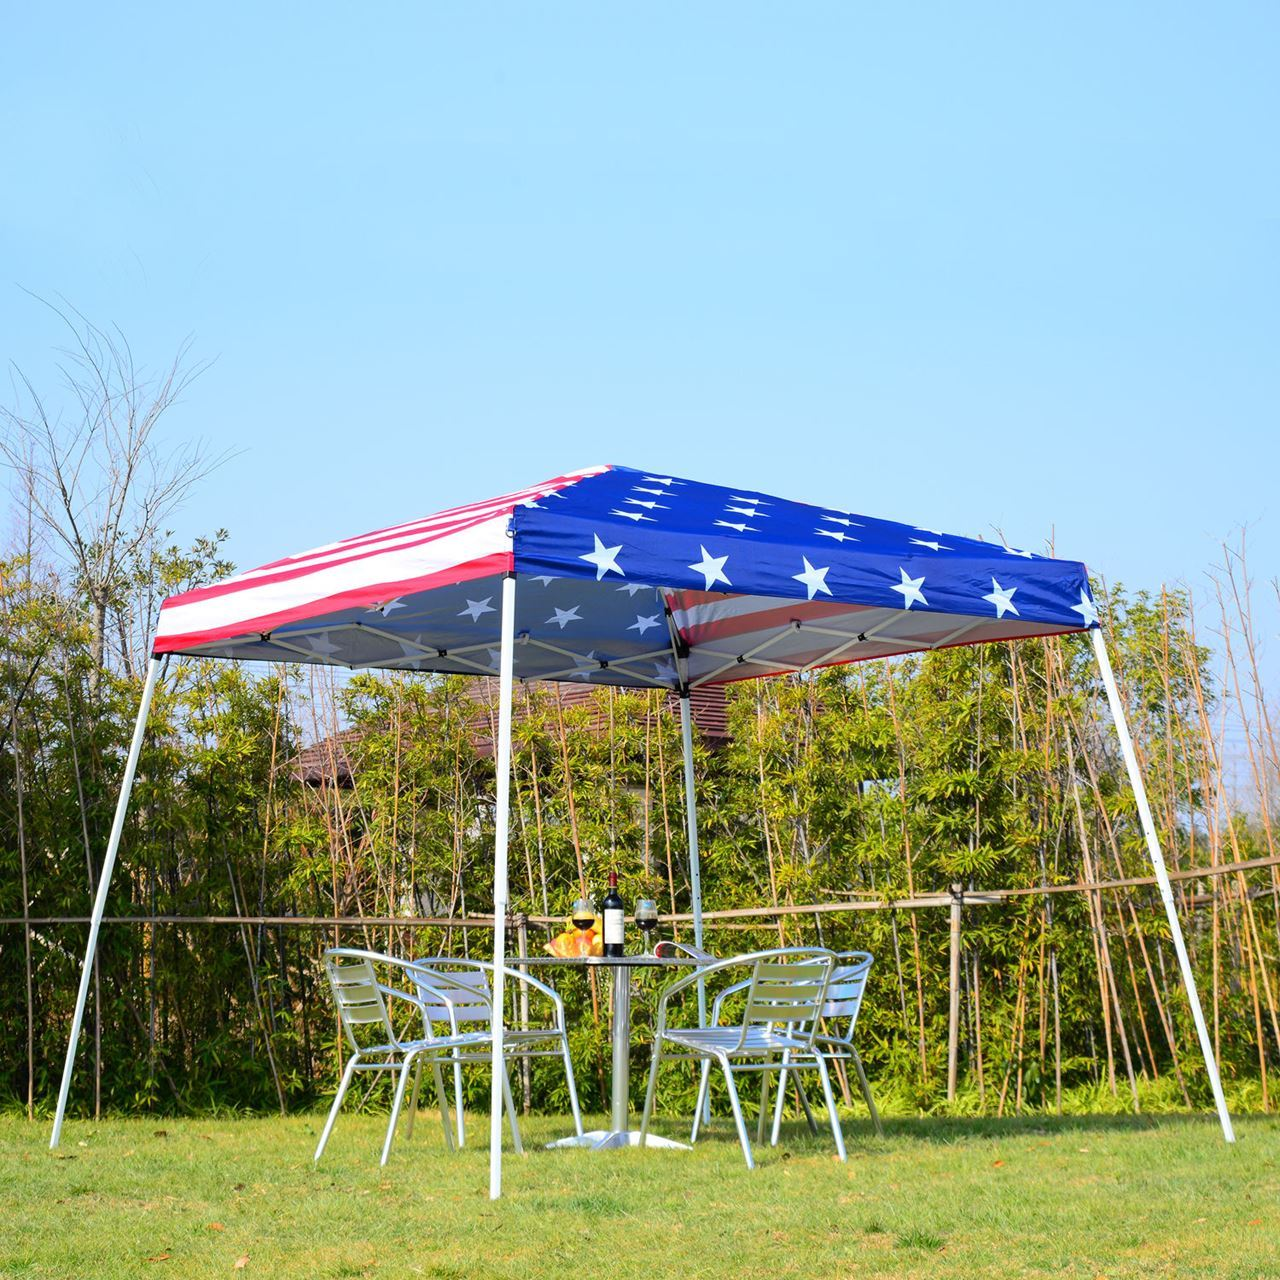 Outdoor 10' x 10' Slant Leg Pop-Up Canopy Tent – American Flag